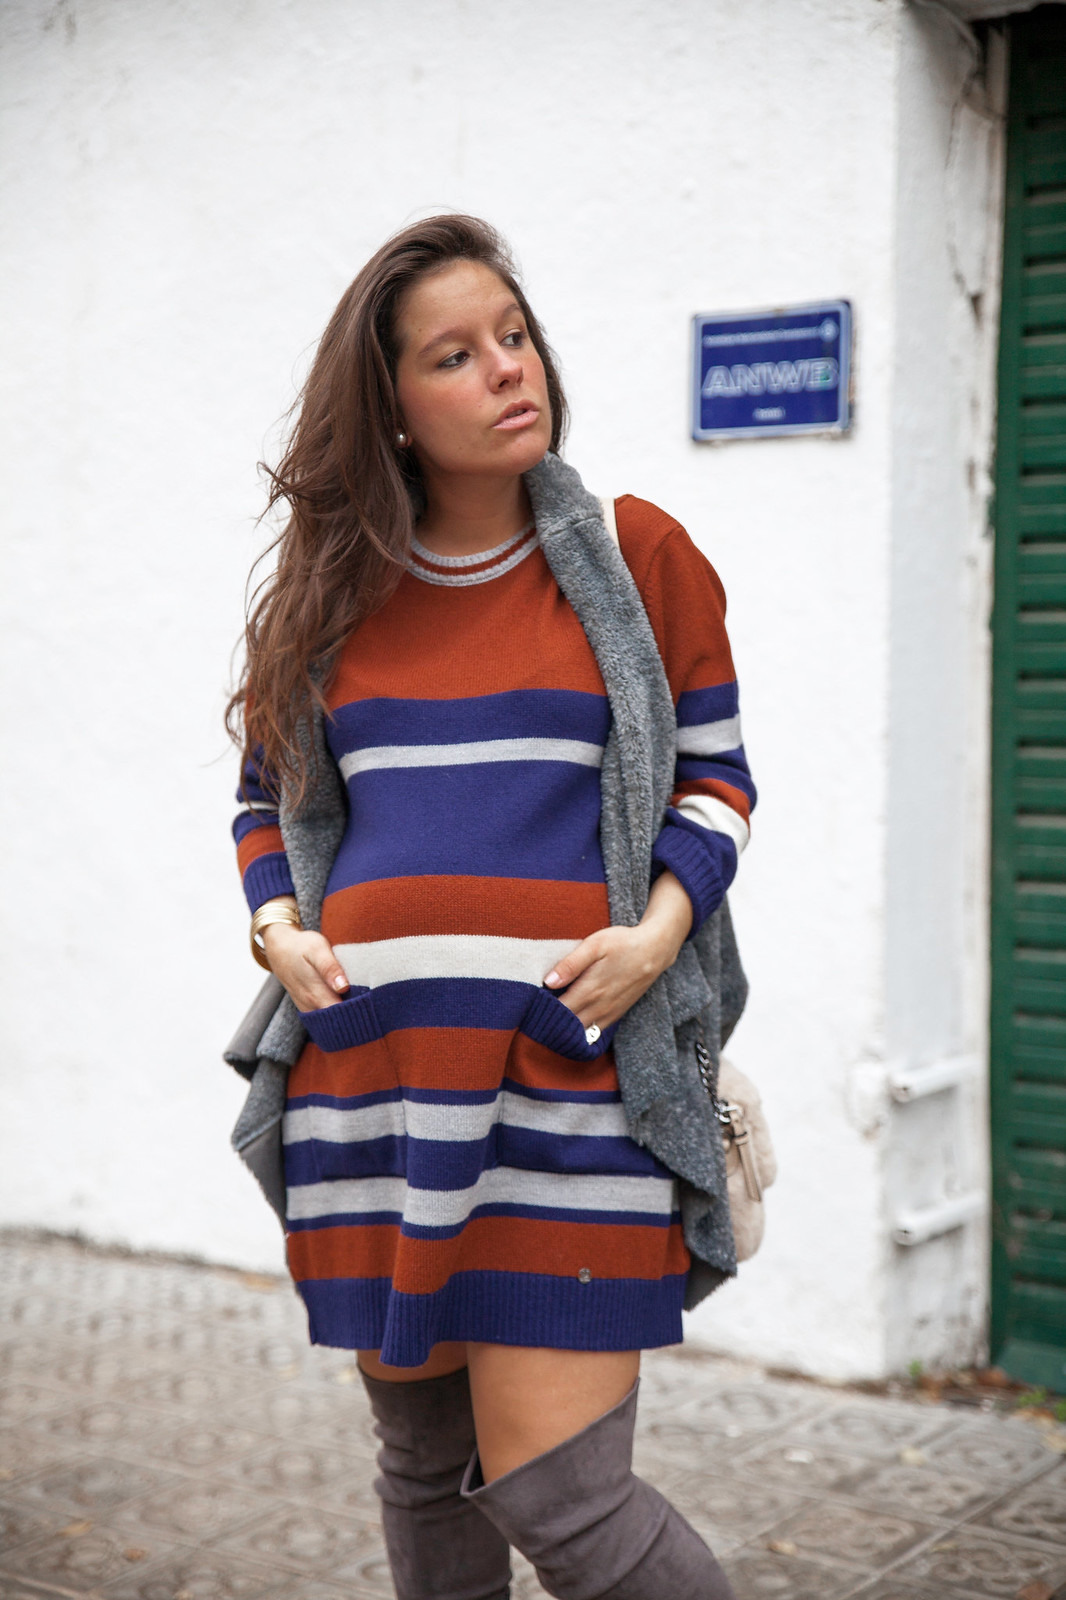 011_Vestido_rayas_punto_chaleco_look_embarazo_tercer_trimestre_theguestgirl_fashion_influencer_fashion_portugal_brand_ruga